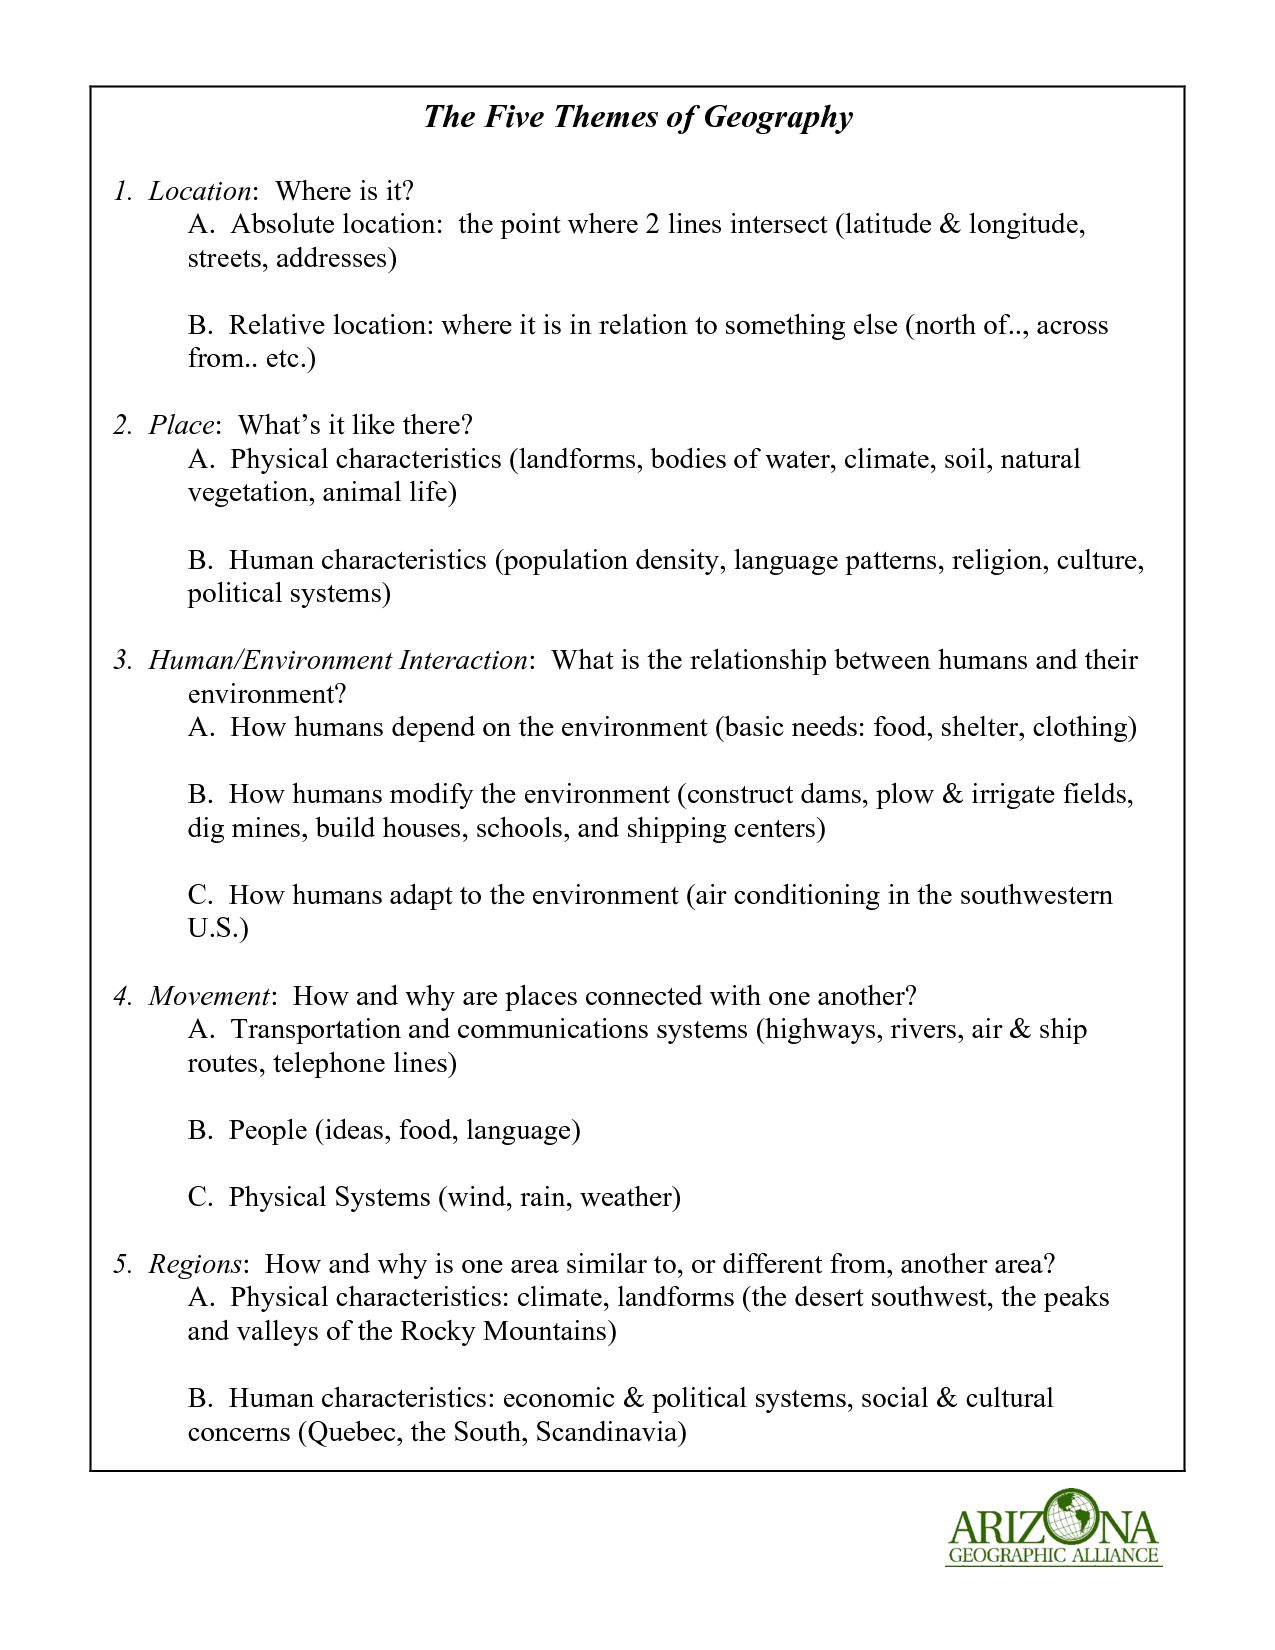 5 Themes of Geography Printable   18 Best Images of Five Themes Of  Geography Worksheets…   Geography worksheets [ 1650 x 1275 Pixel ]